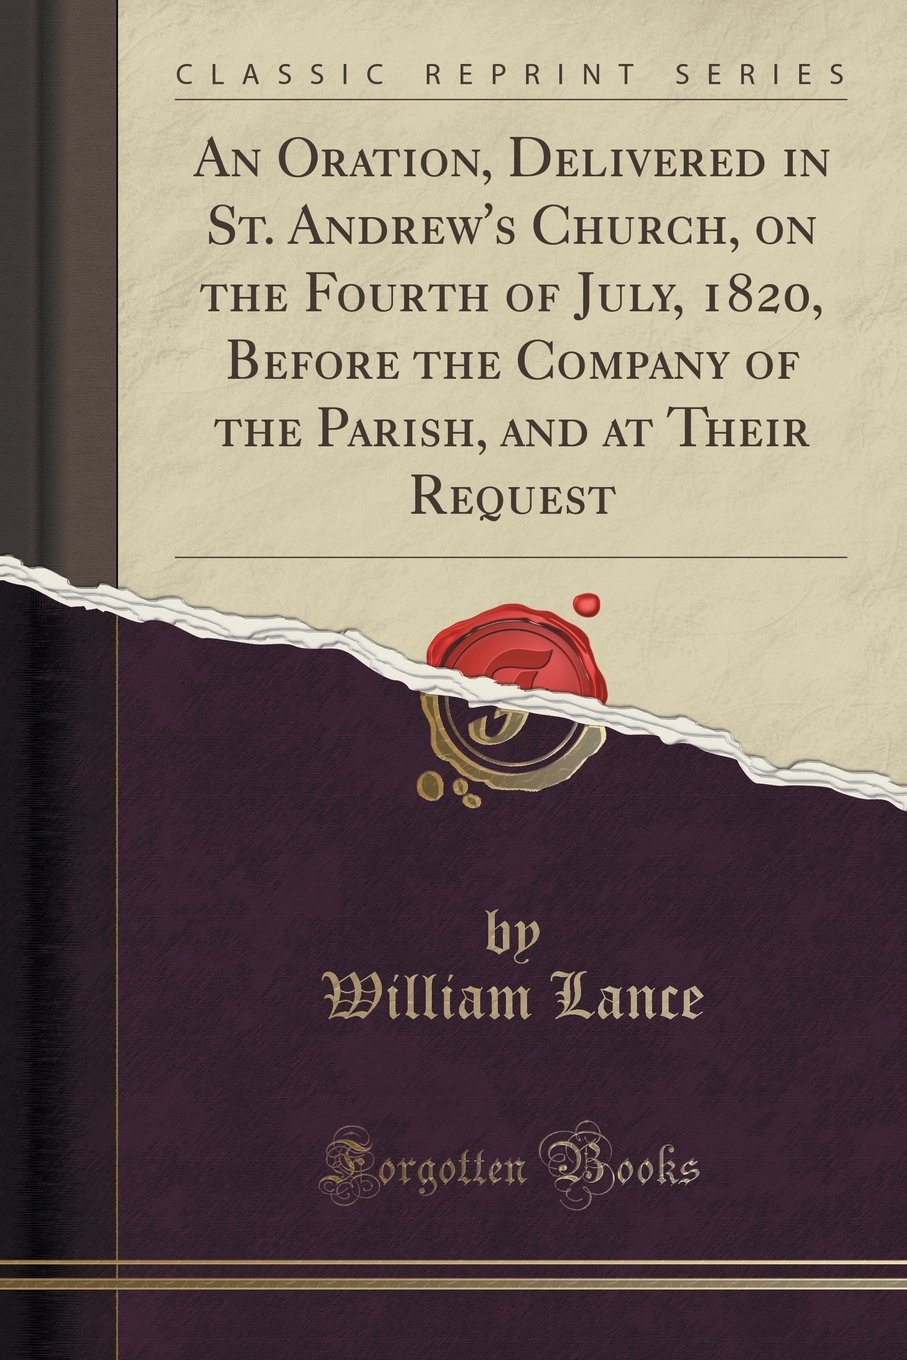 An Oration, Delivered in St. Andrew's Church, on the Fourth of July, 1820, Before the Company of the Parish, and at Their Request (Classic Reprint) PDF